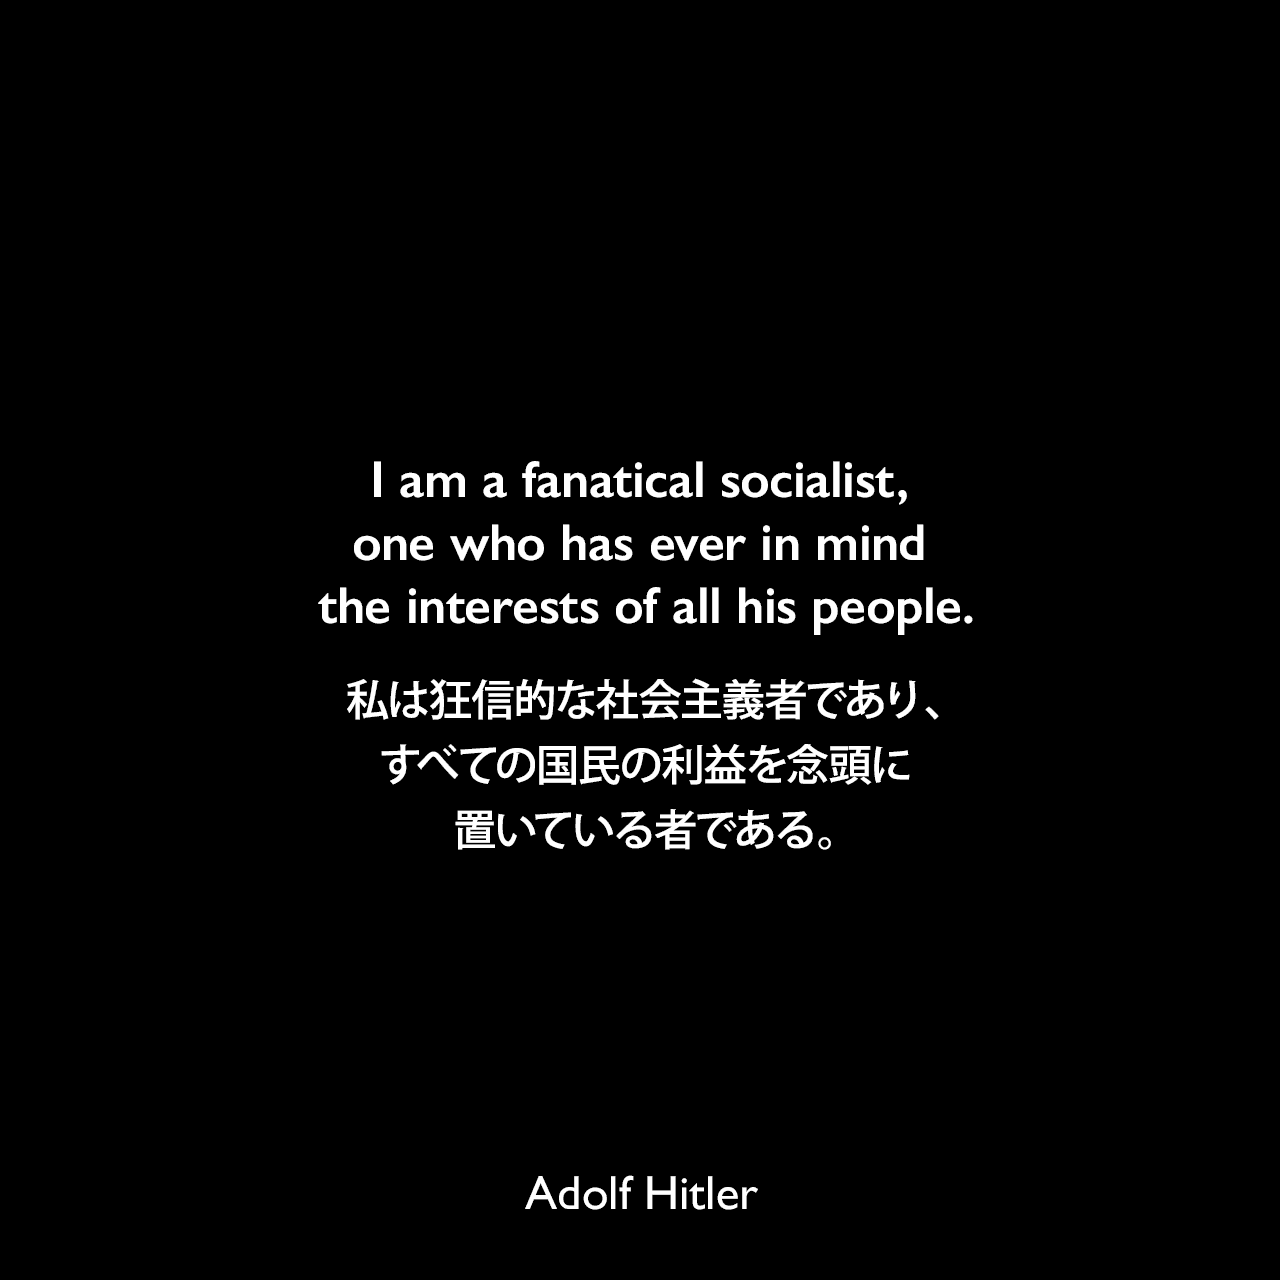 I am a fanatical socialist, one who has ever in mind the interests of all his people.私は狂信的な社会主義者であり、すべての国民の利益を念頭に置いている者である。- 1941年2月24日 国民社会党創立21周年記念のスピーチよりAdolf Hitler